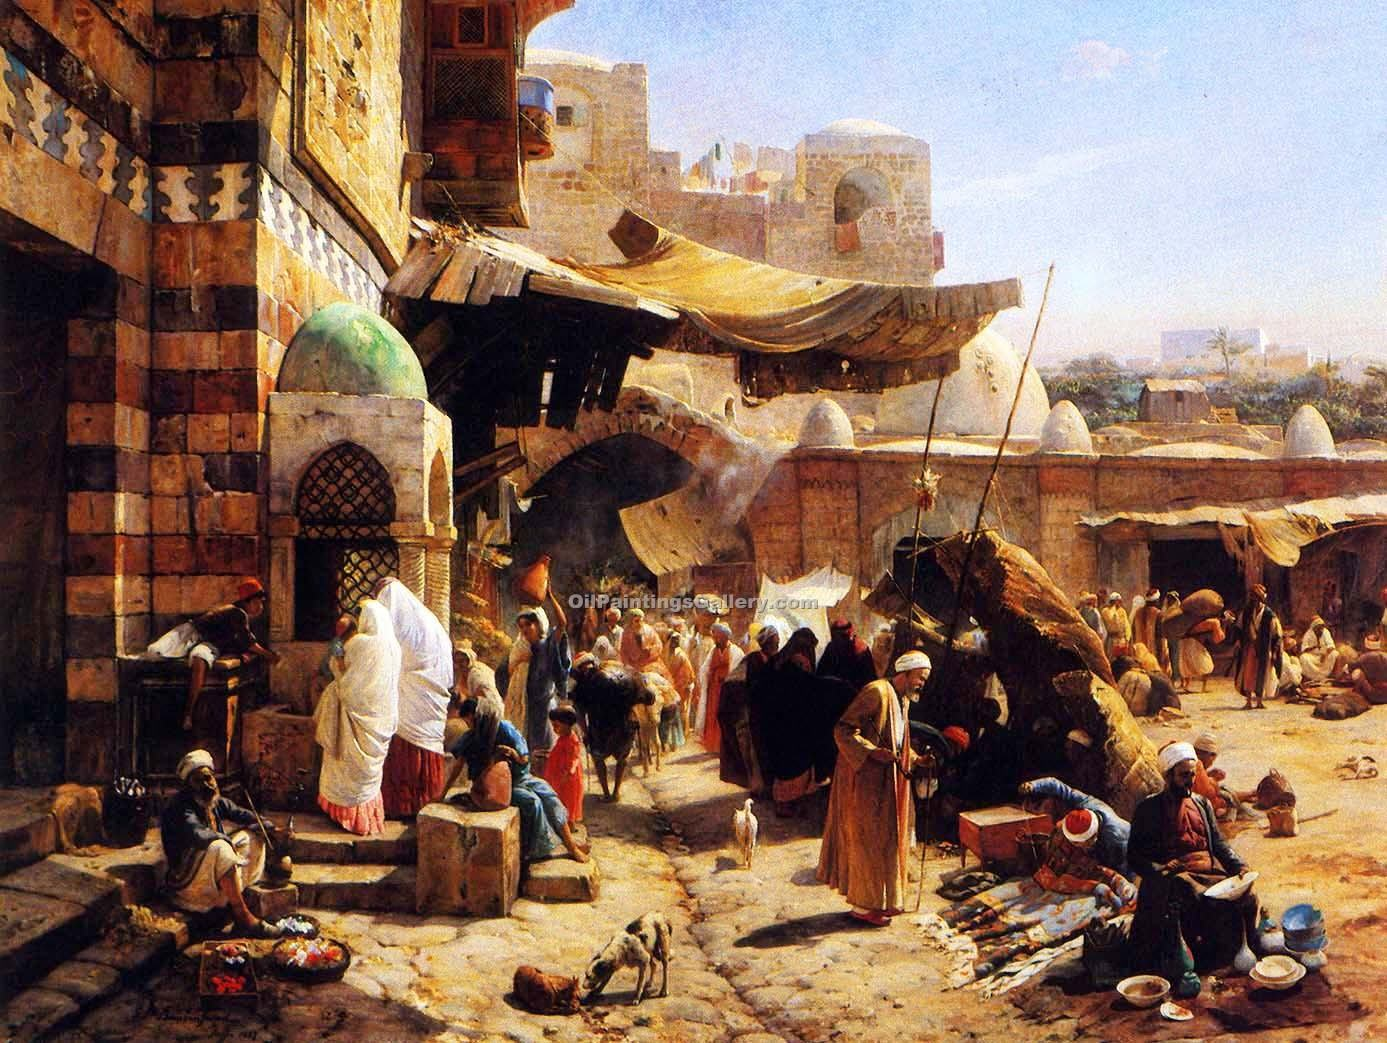 Market Jaffa by Gustav Bauernfeind | Paintings Online - Oil Paintings Gallery